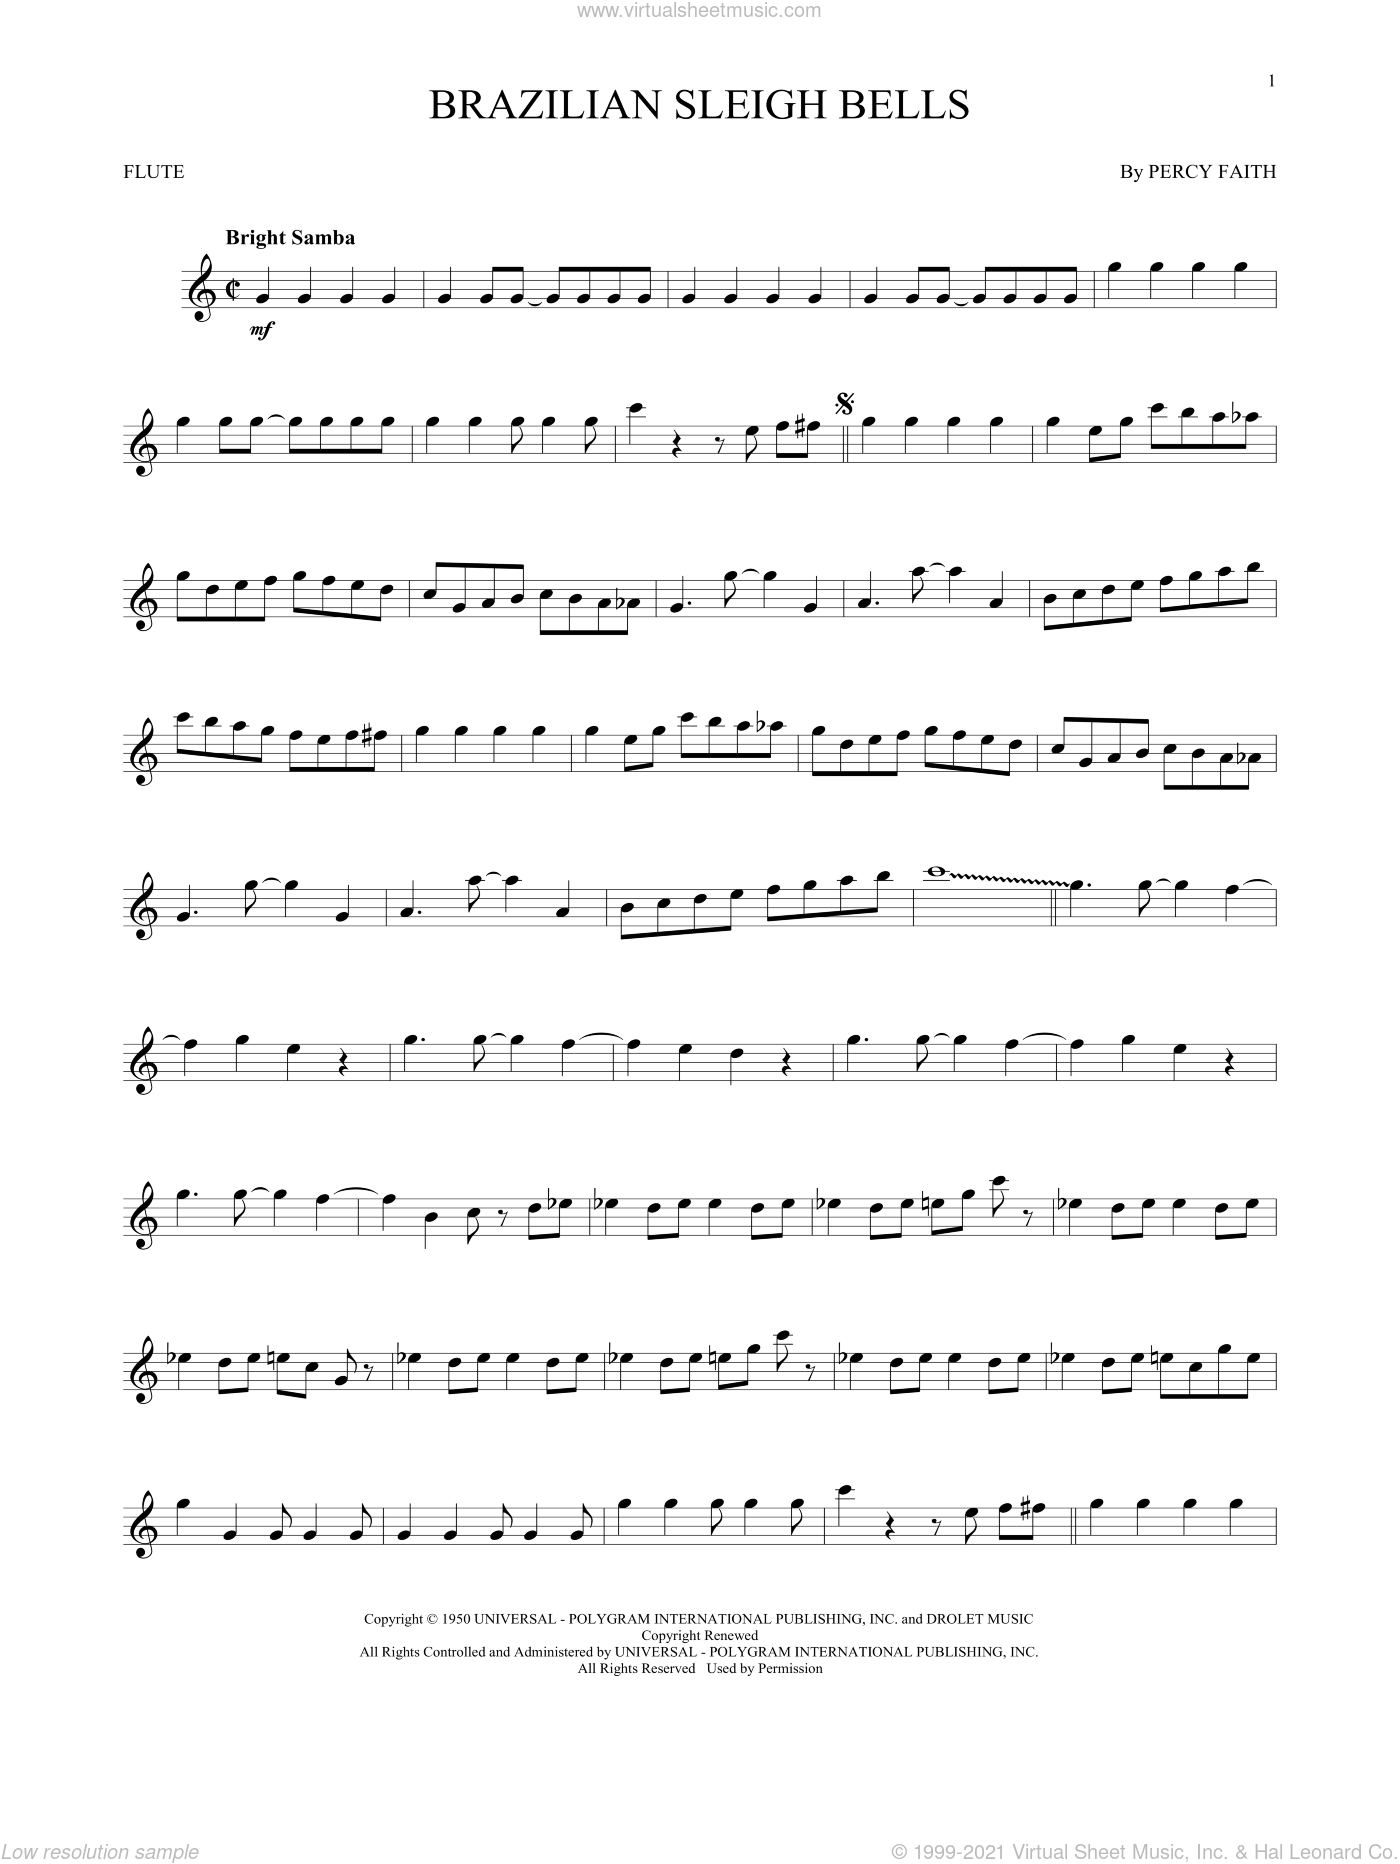 Brazilian Sleigh Bells sheet music for flute solo by Percy Faith, intermediate skill level